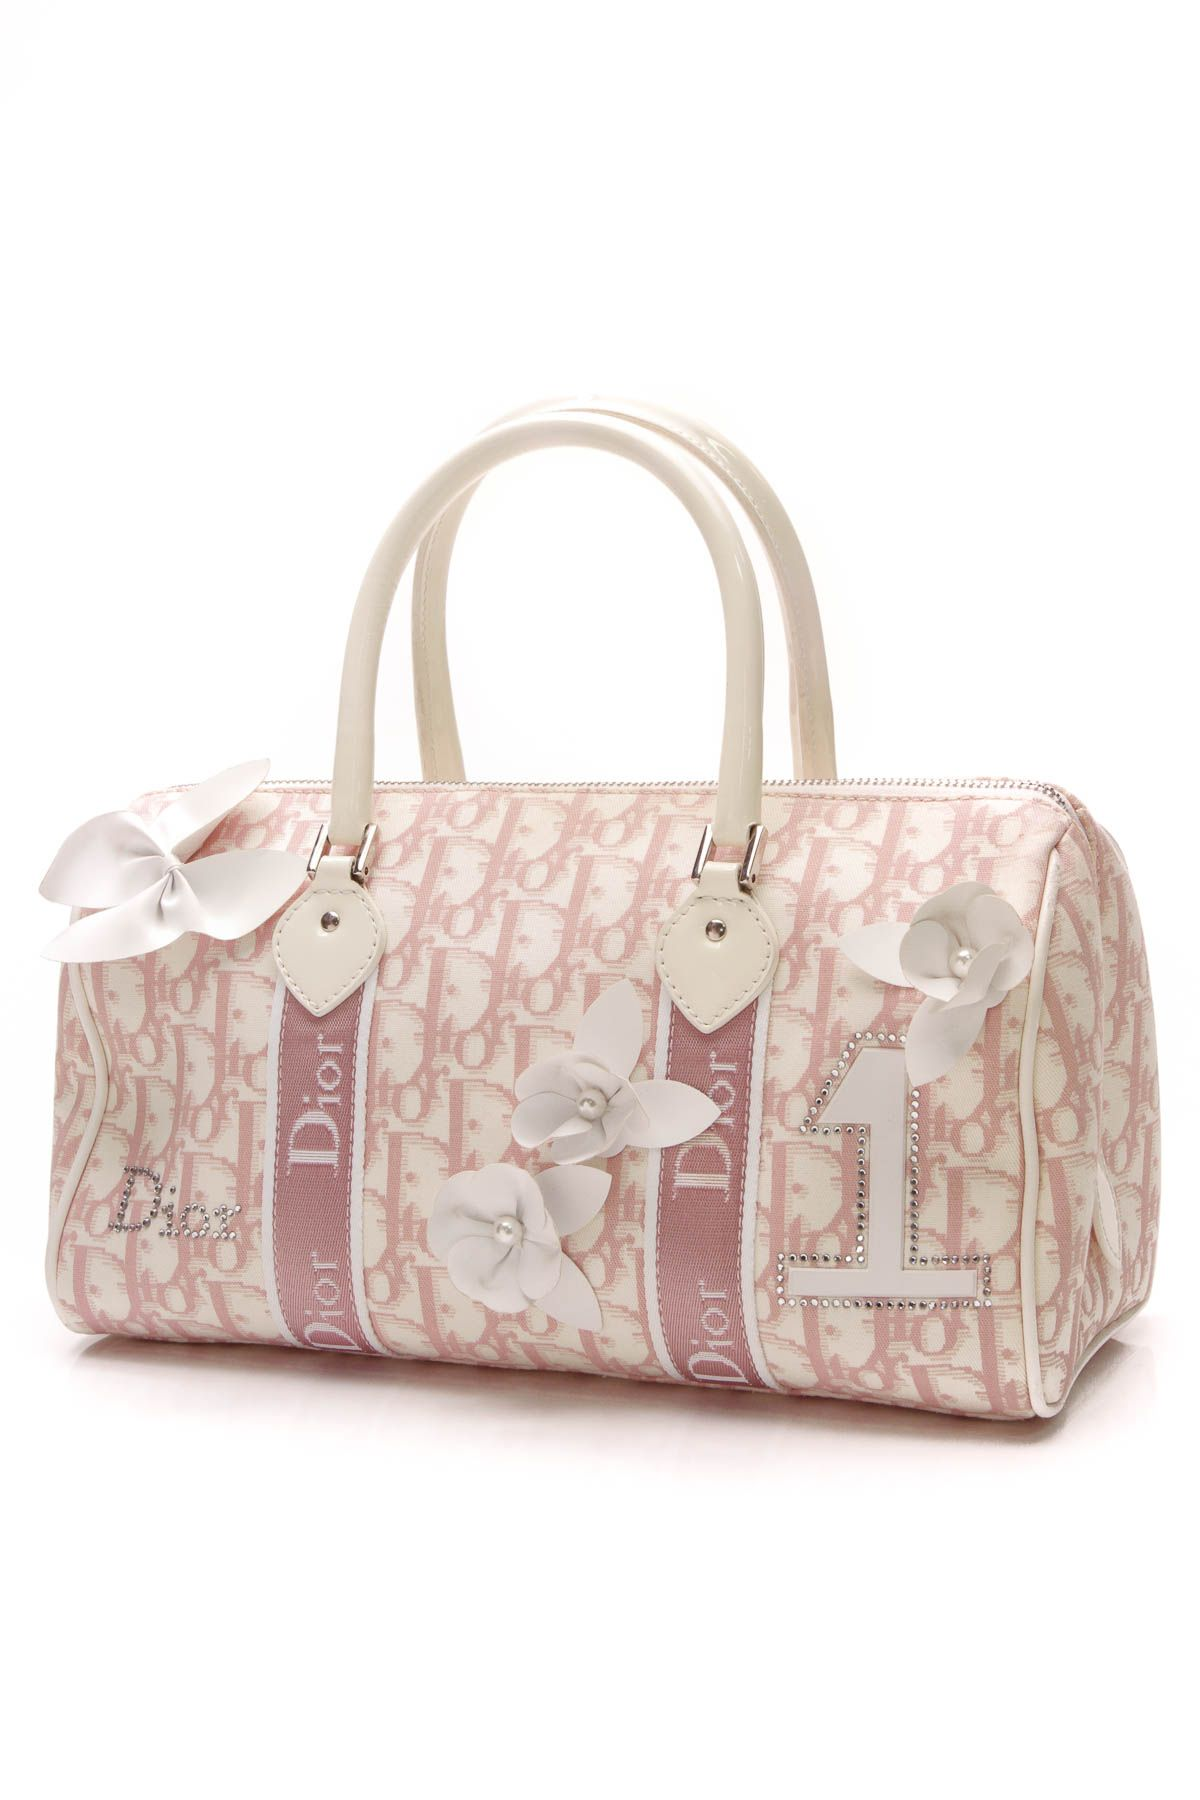 91c2583d50ad Girly flowers boston bag diorissimo canvas in the bag jpg 1200x1800 Dior  beige bag girly pictures